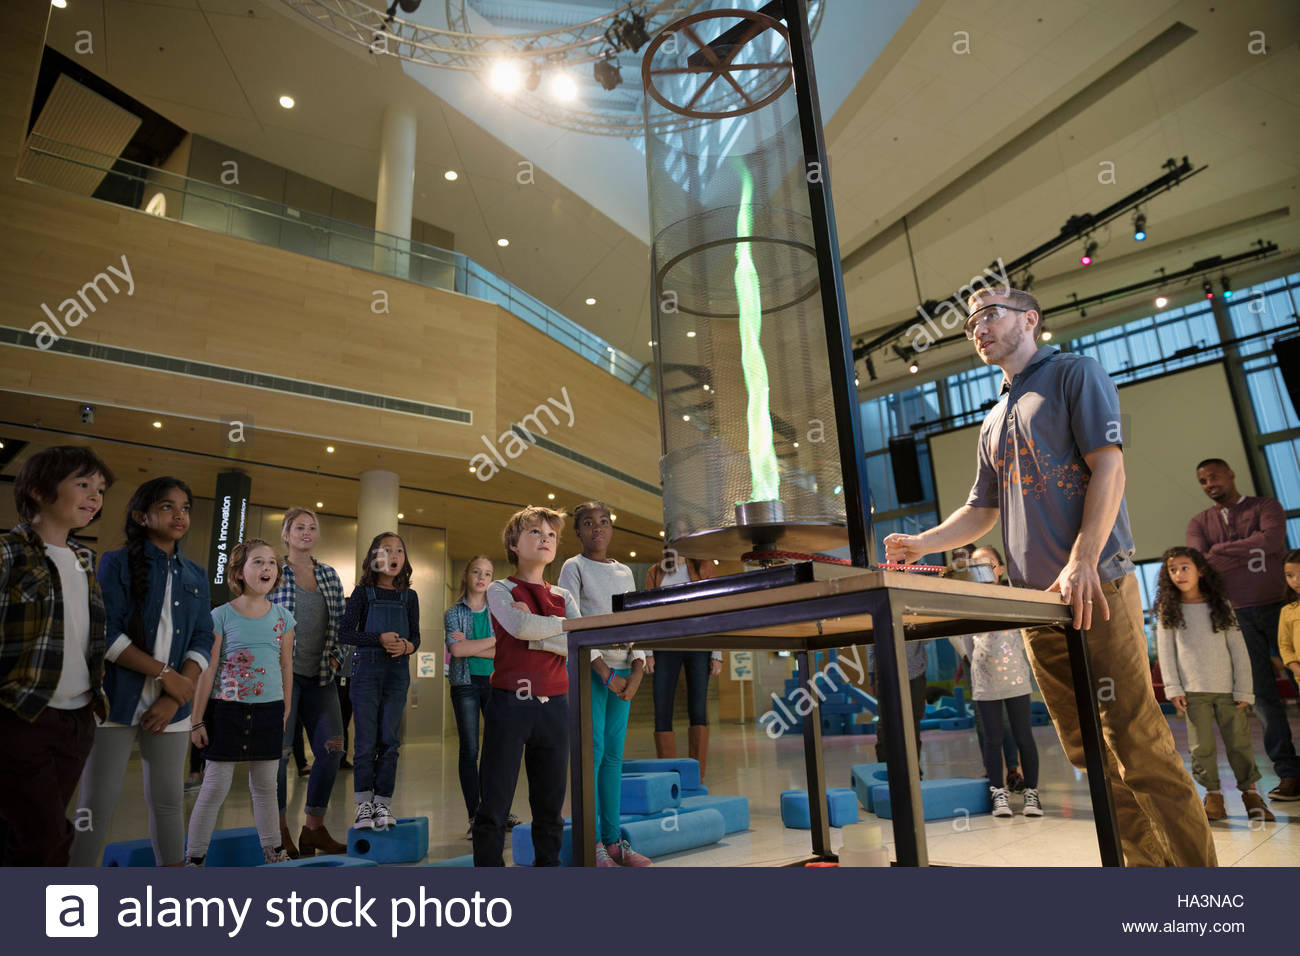 Children watching scientist conducting fire experiment demonstration - Stock Image